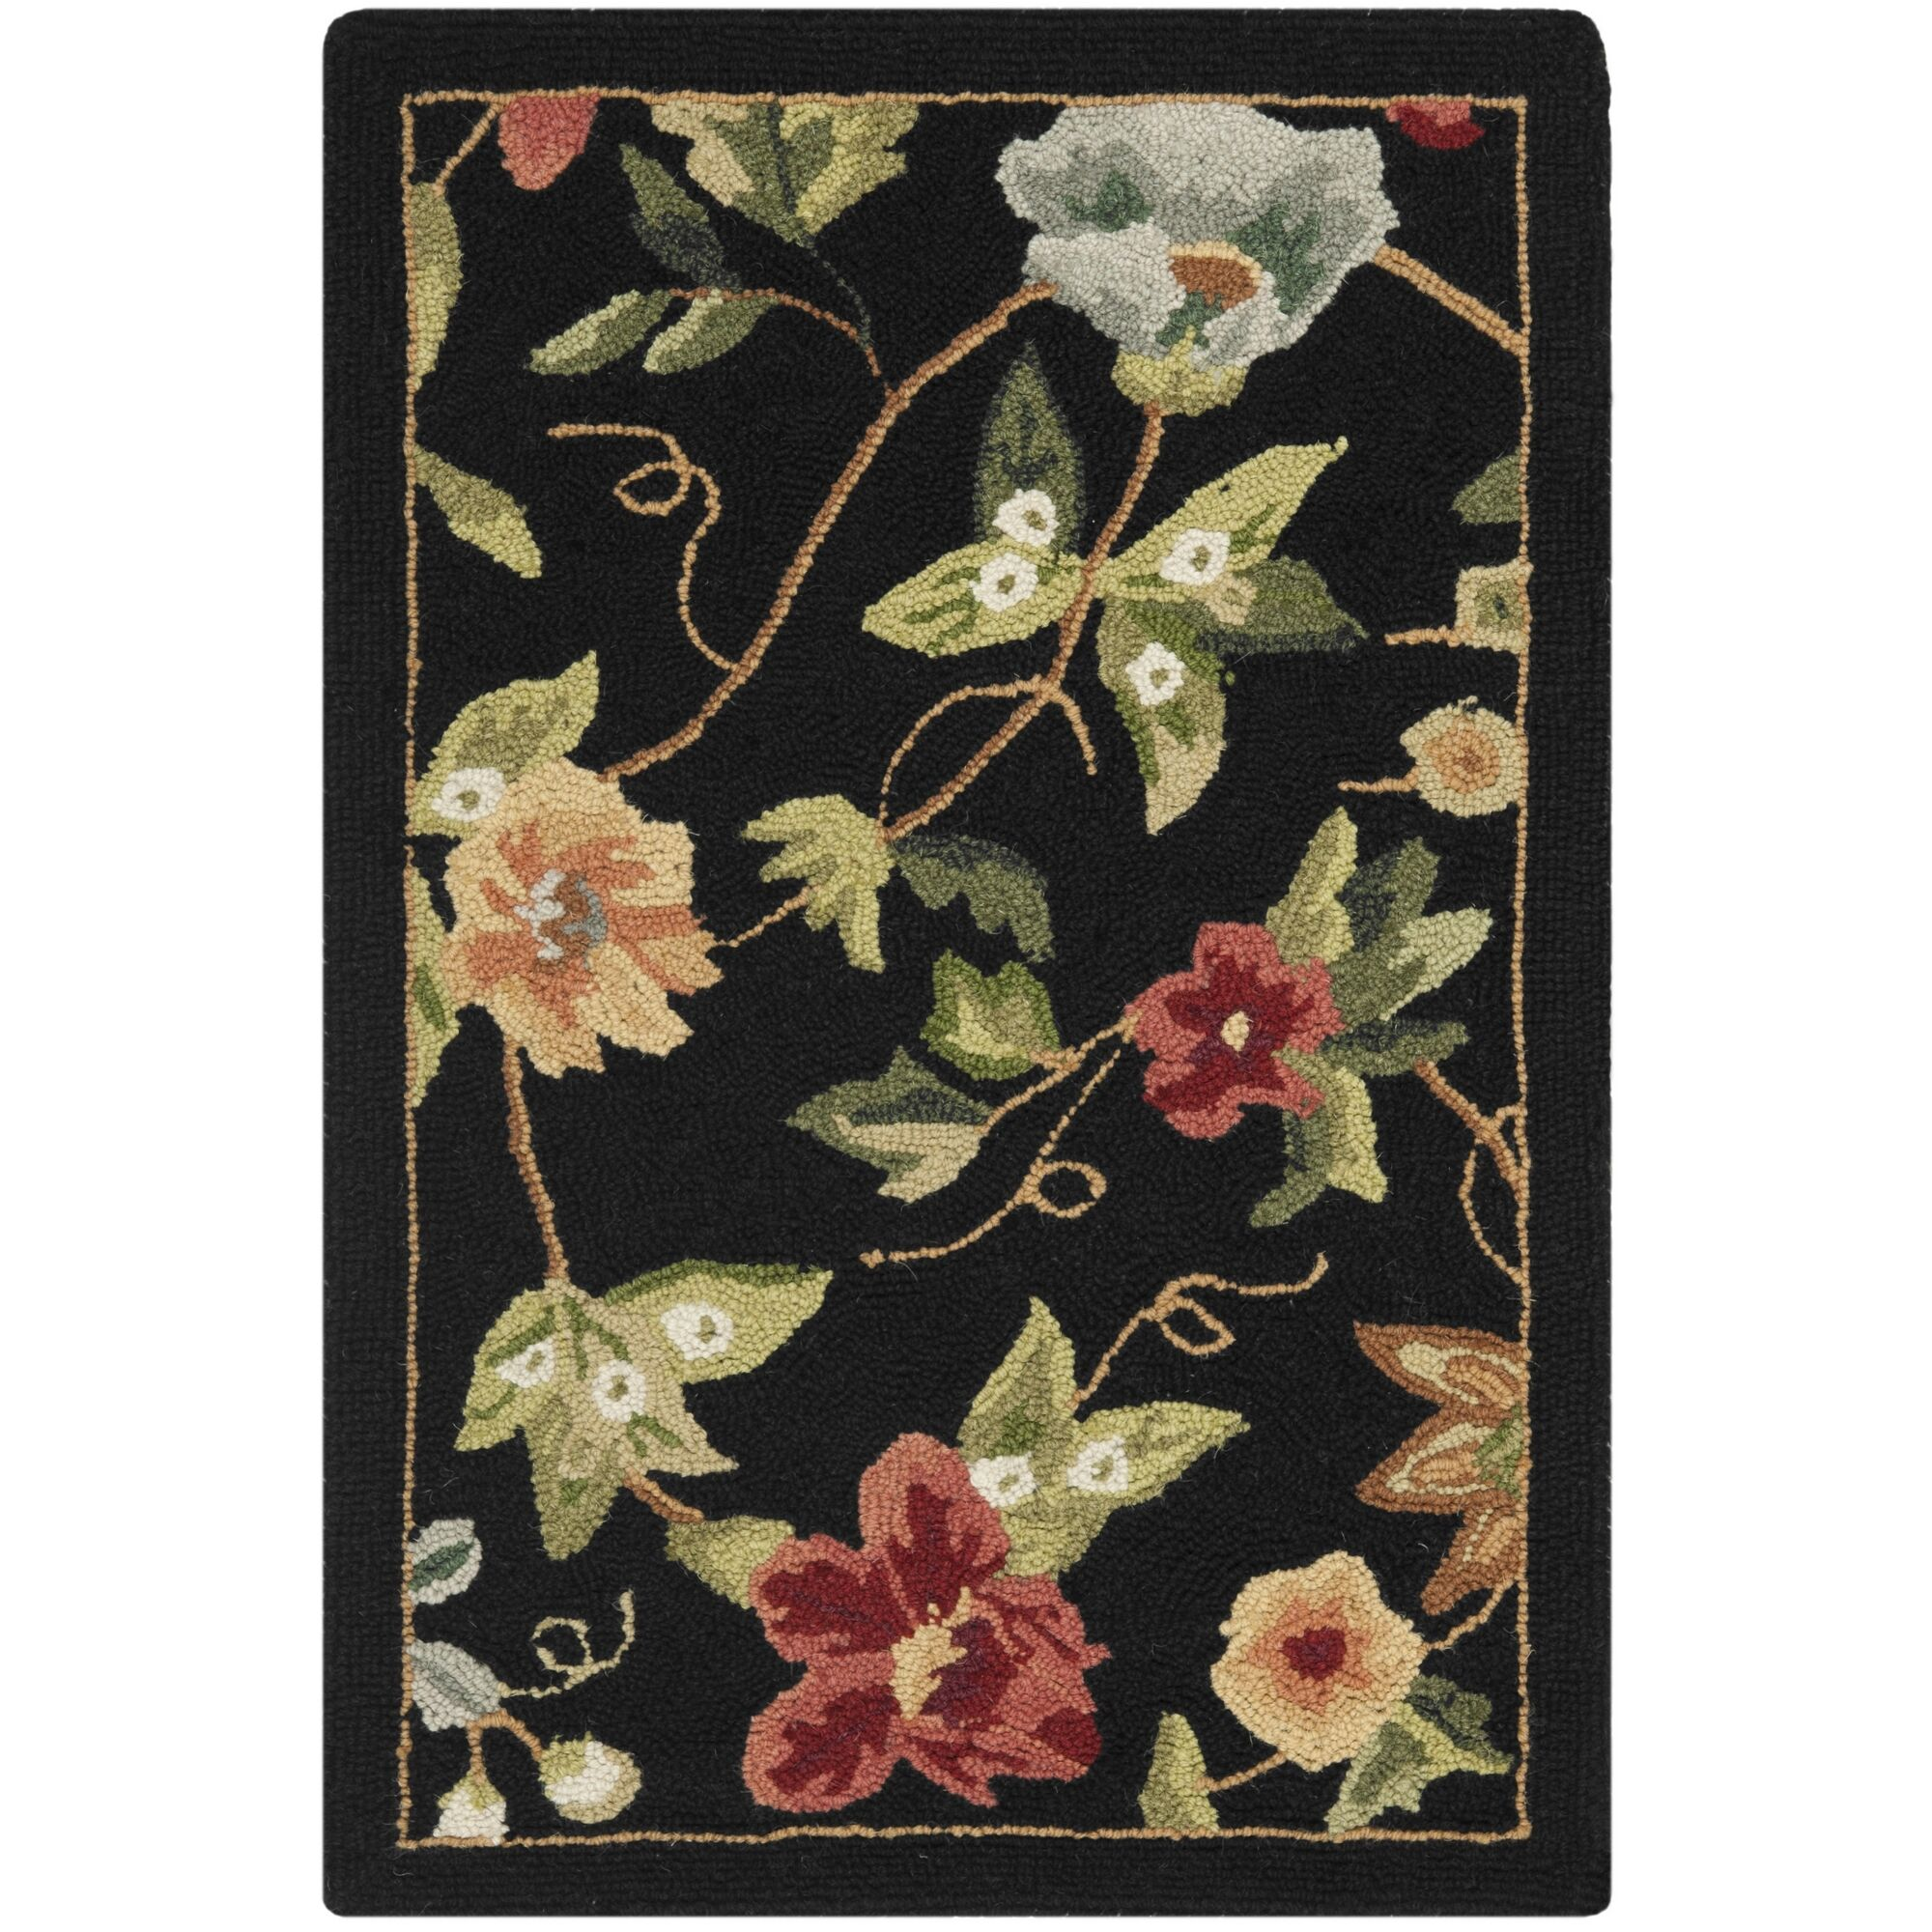 Helena Black/Sage Hooked Wool Area Rug Rug Size: Rectangle 7'9